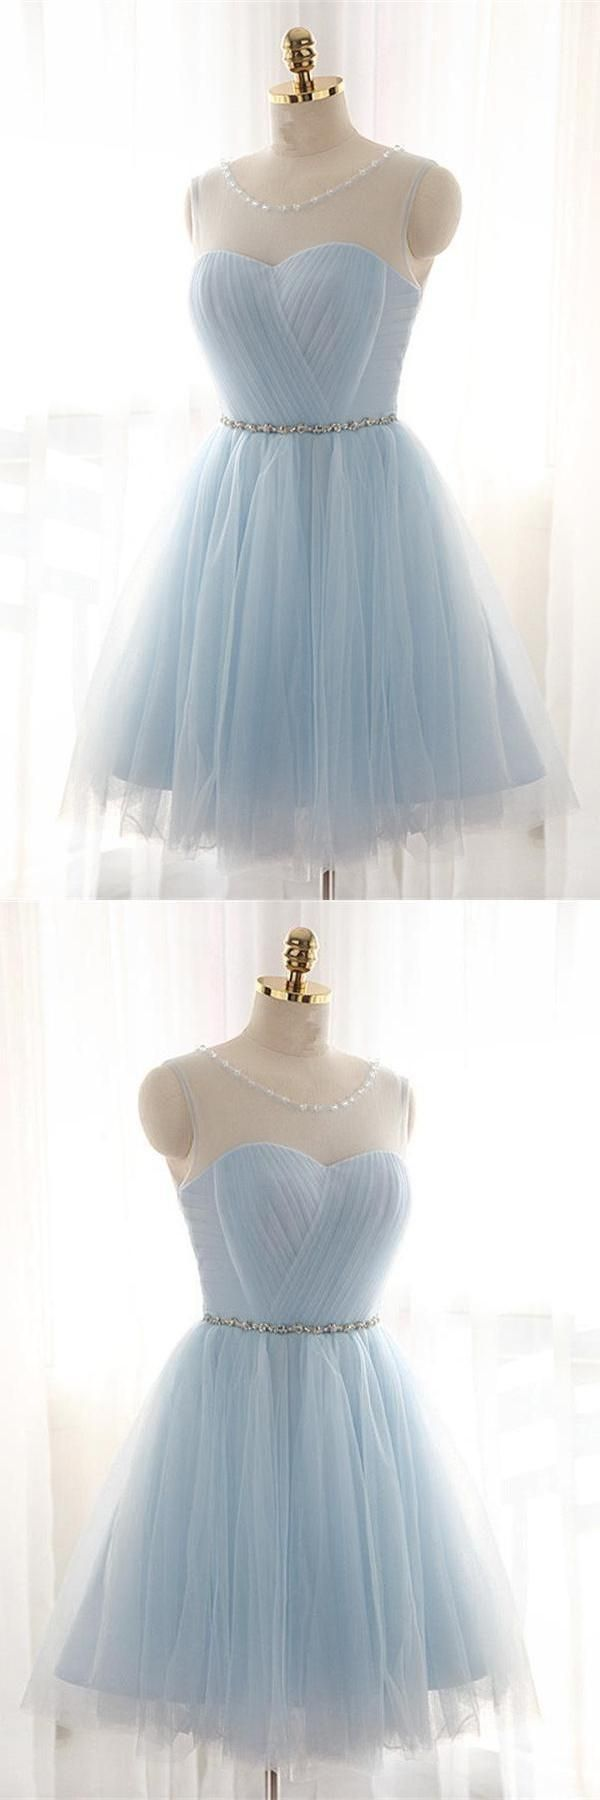 Aline prom dresses lace prom dresses prom dresses for cheap prom